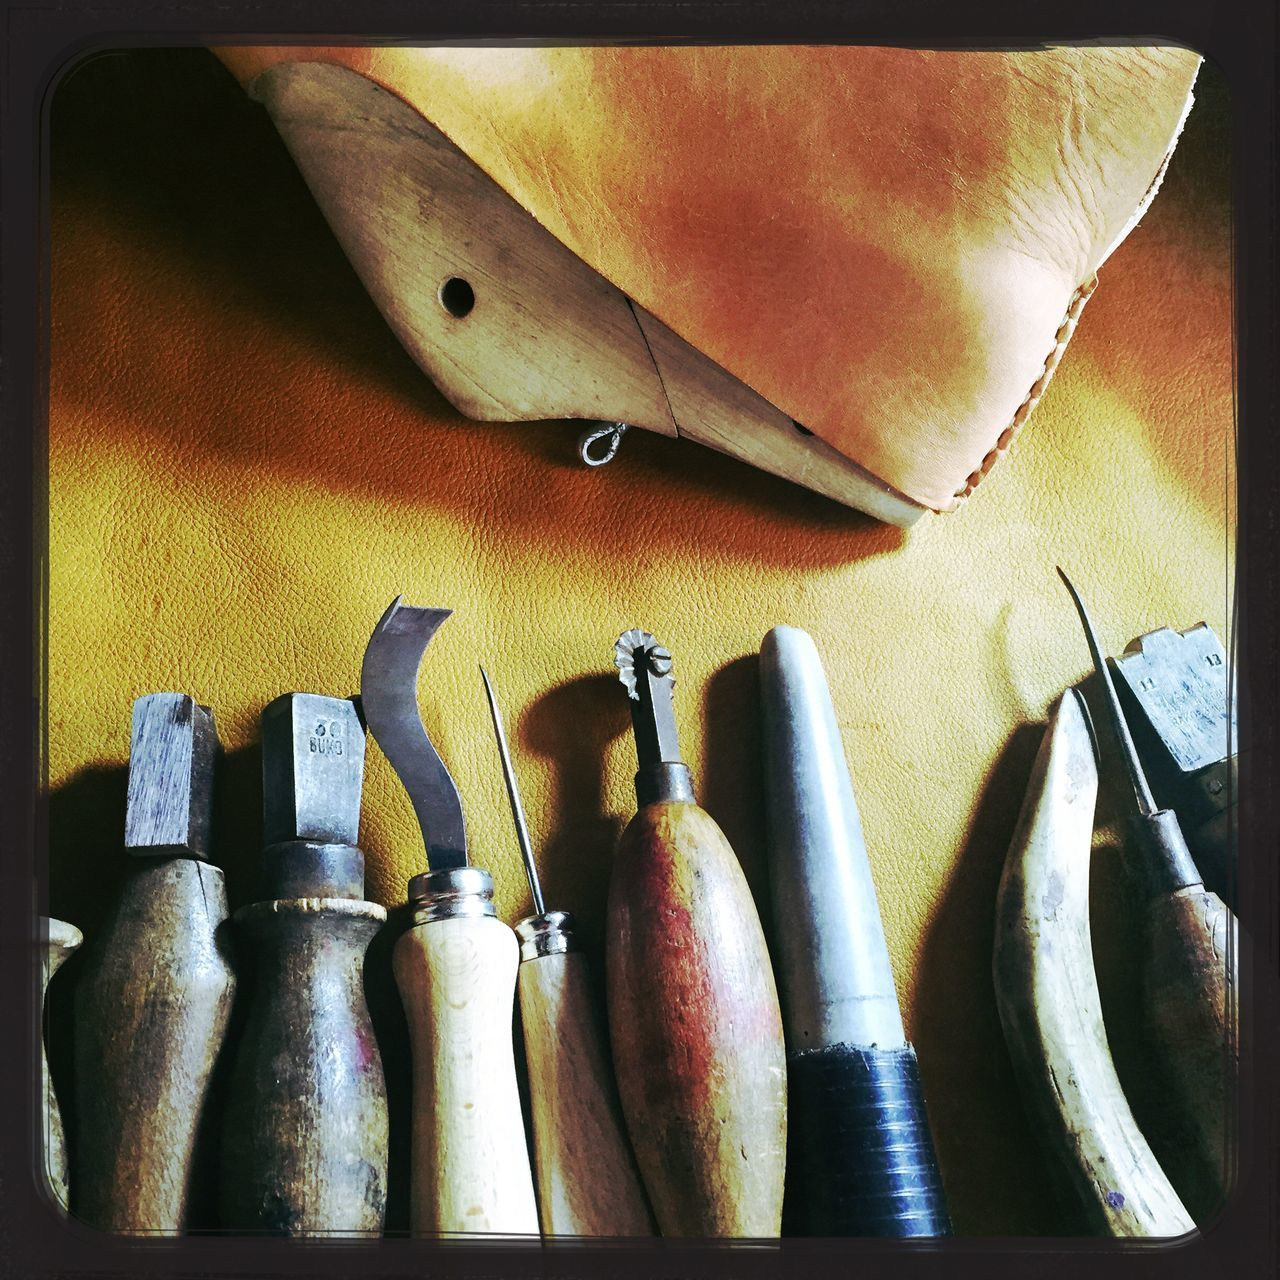 Shoemaker Shoemaking Tools Leather